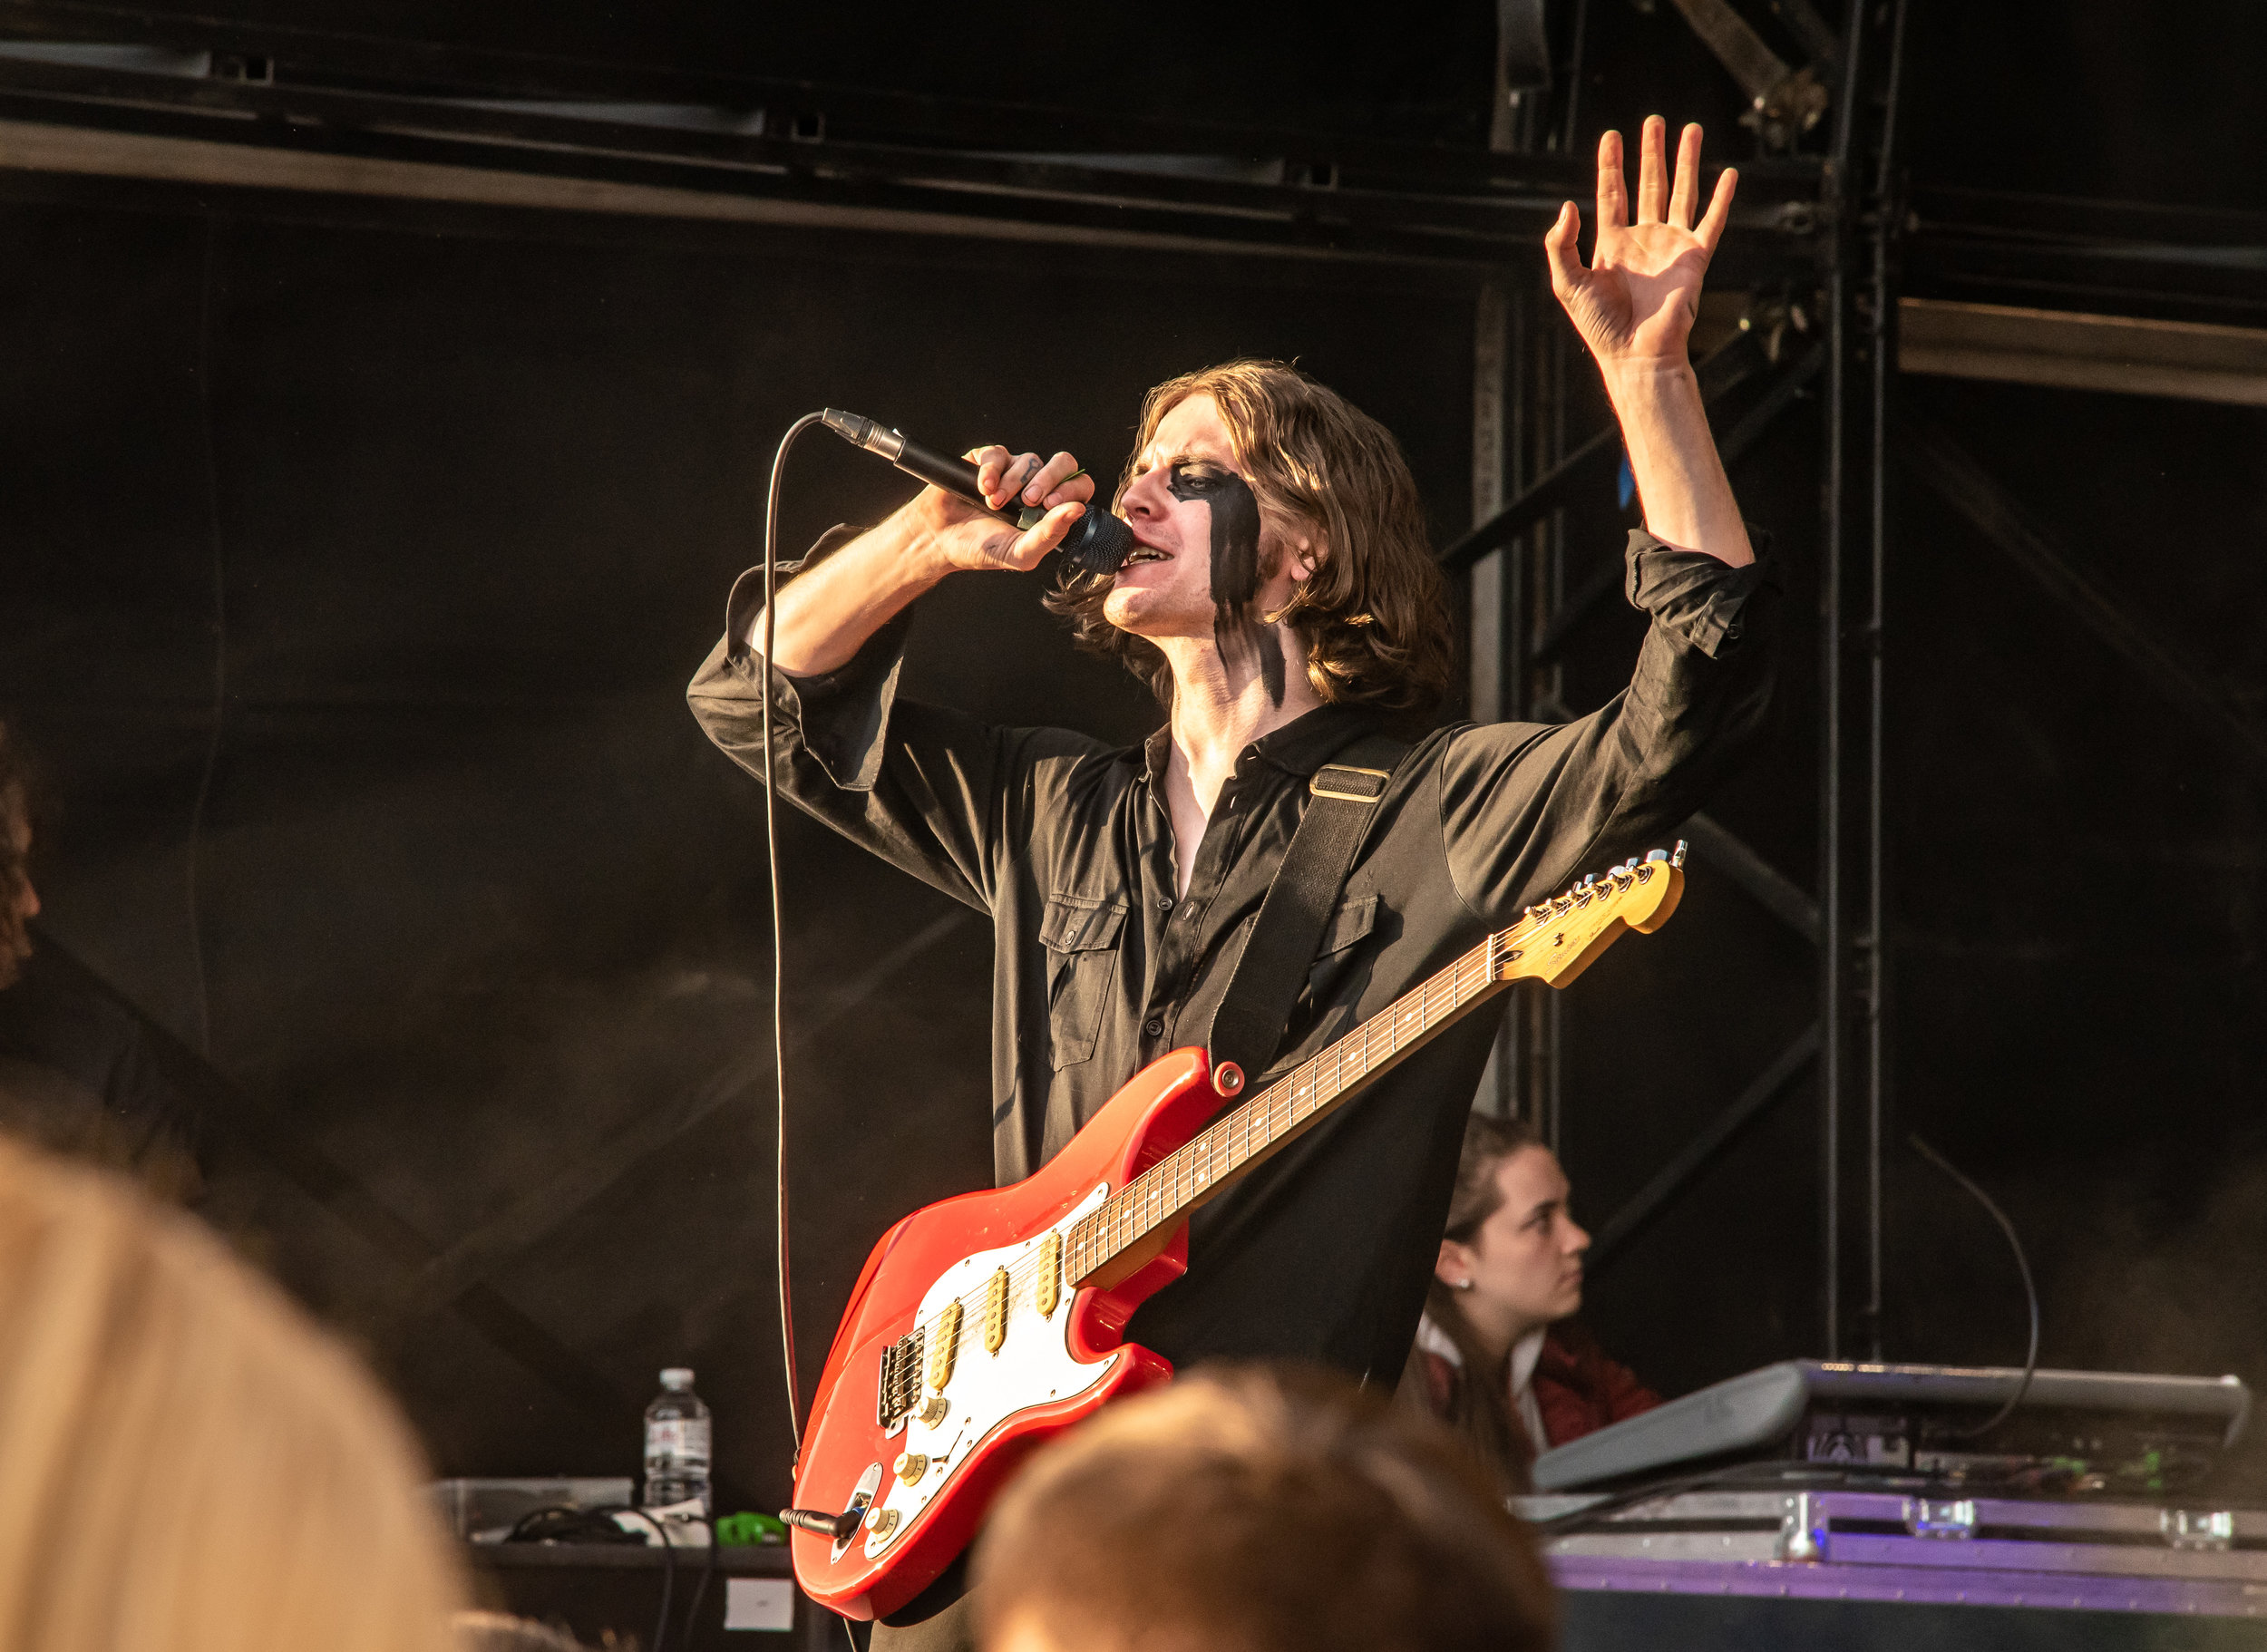 THE BLINDERS HEADLINING BBC INTRODUCING STAGE AT SECOND DAY OF LEEDS FESTIVAL 2018 - 25.08.2018  PICTURE BY: CALUM BUCHAN PHOTOGRAPHY